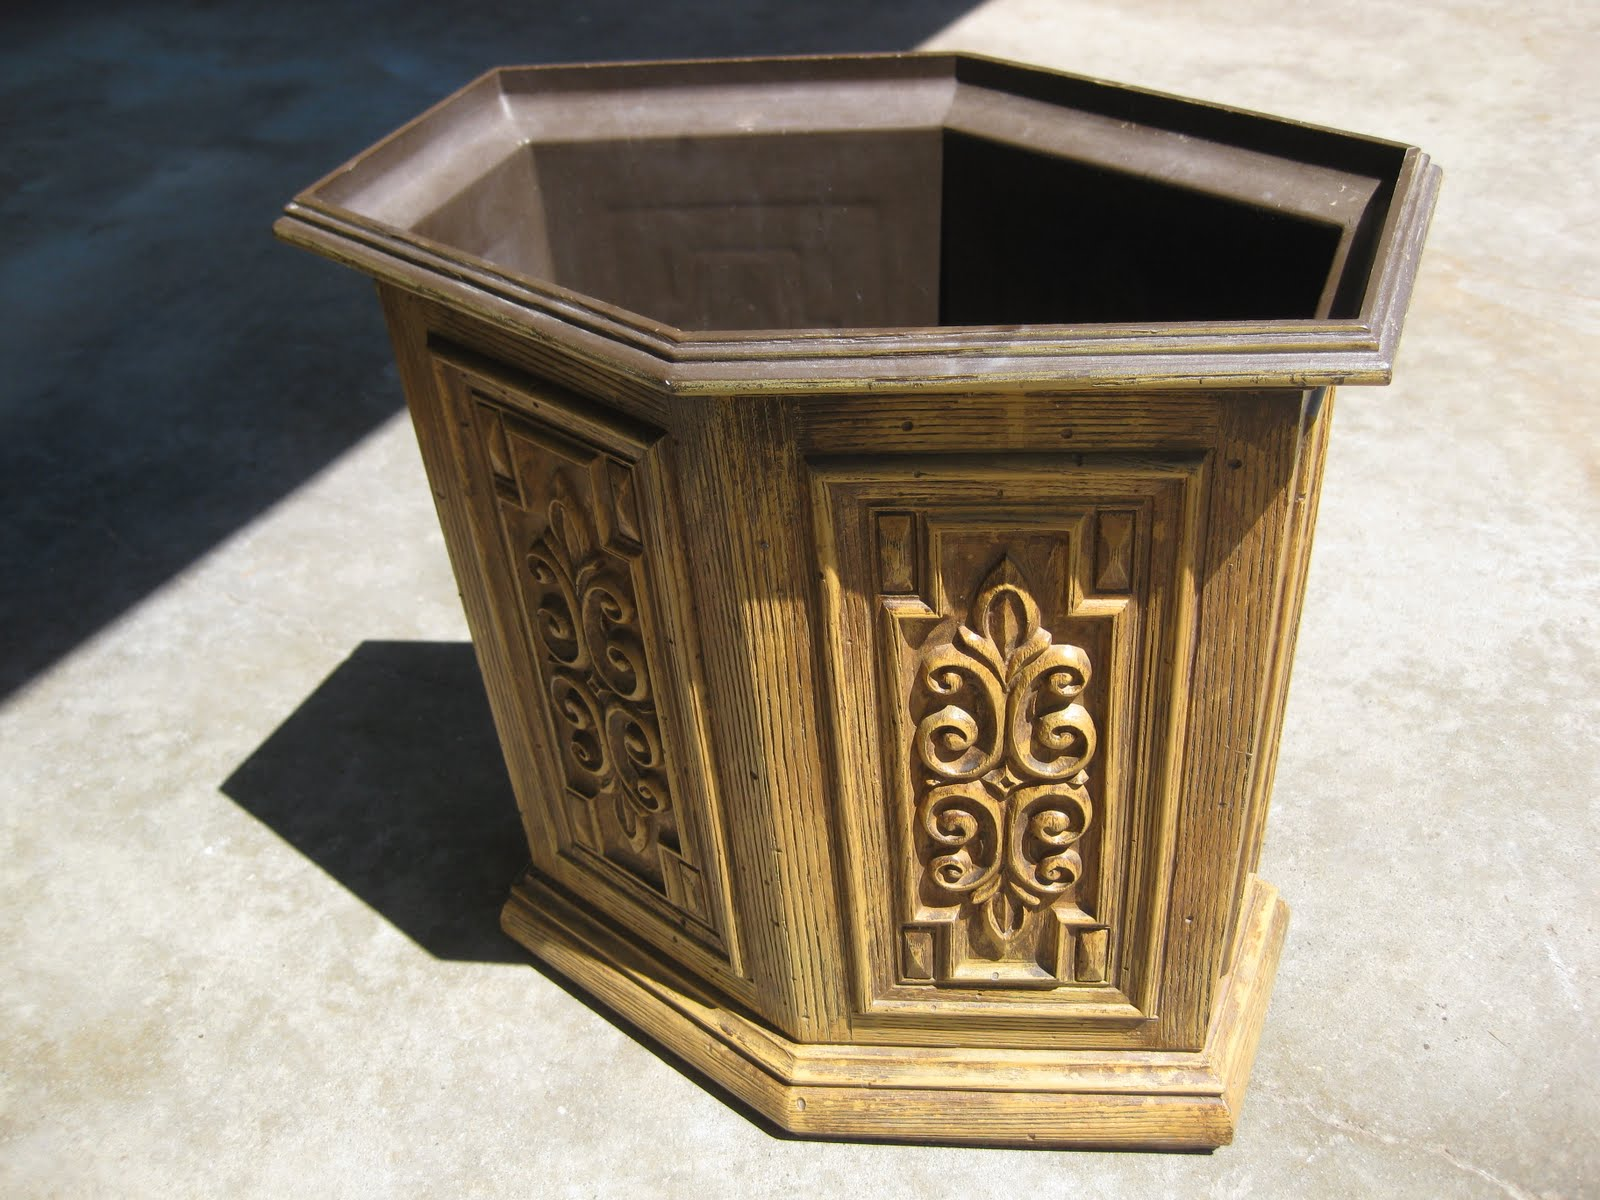 The Original Wastebasket Was Not Very Cute But Makes For Perfect Canvas To Antique